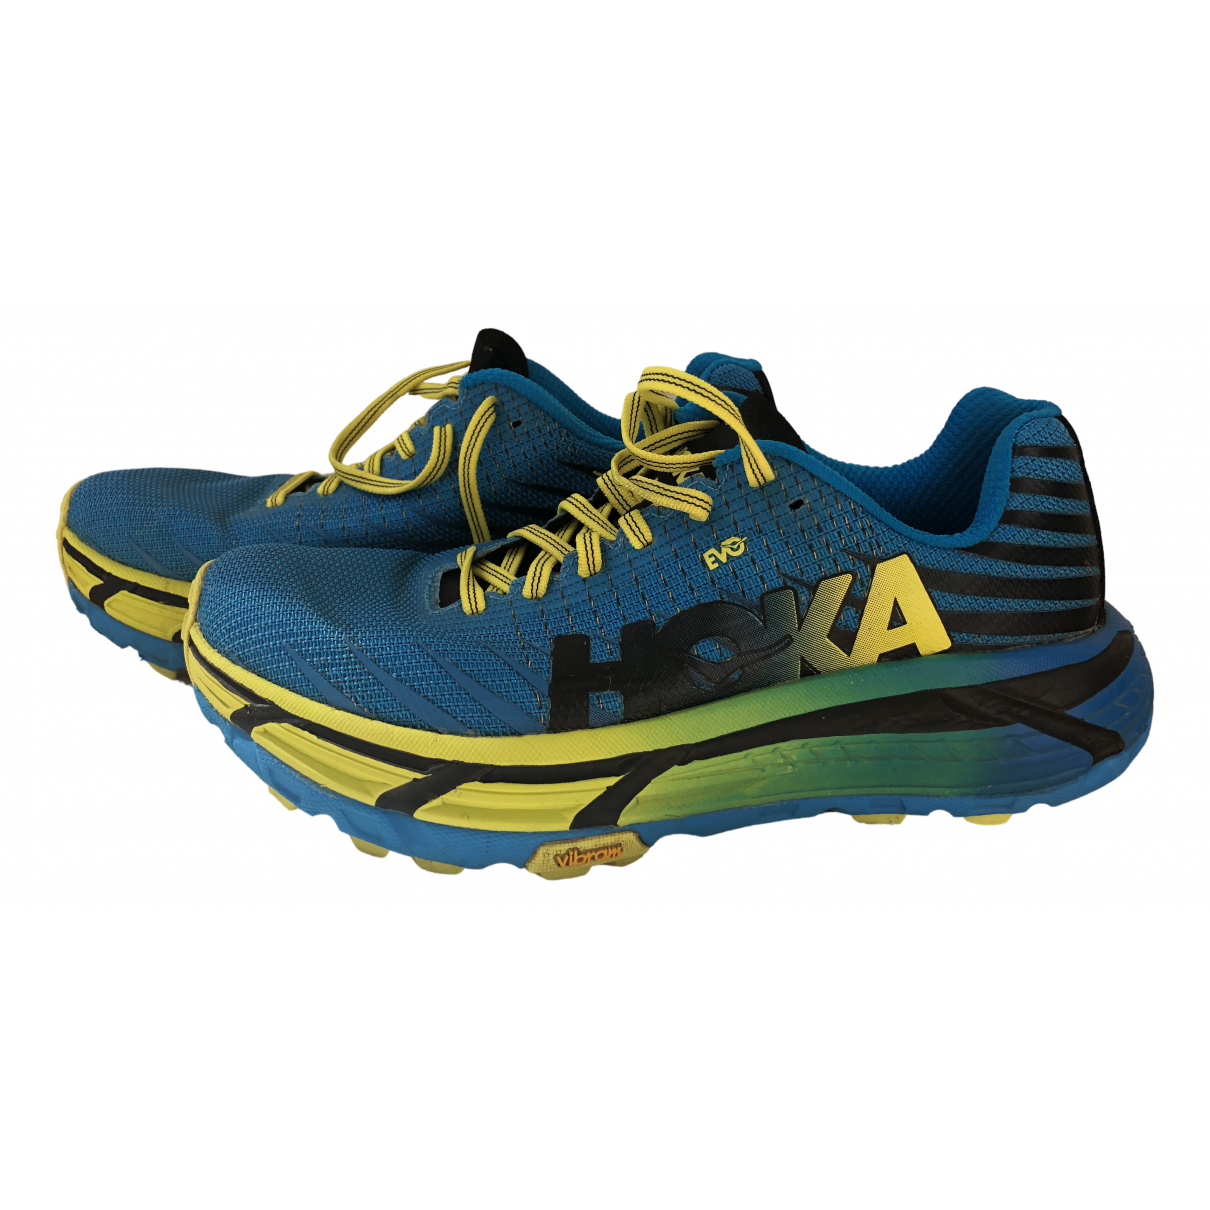 Hoka One One \N Sneakers in  Blau Leinen